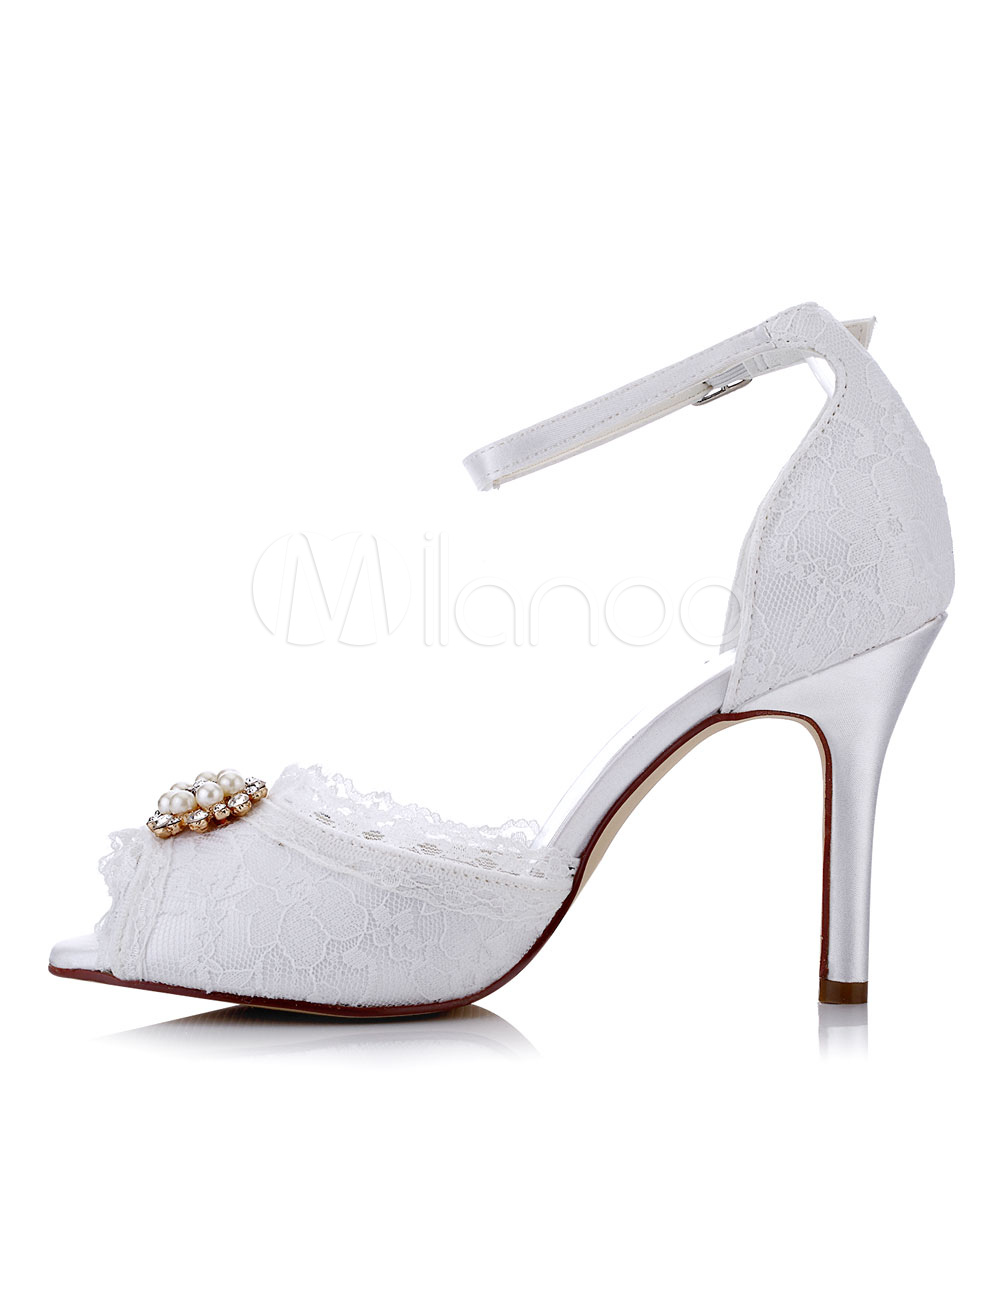 Buy White Wedding Shoes Lace High Heel Peep Toe Pearls Beaded Ankle Strap Bridal Shoes for $55.09 in Milanoo store